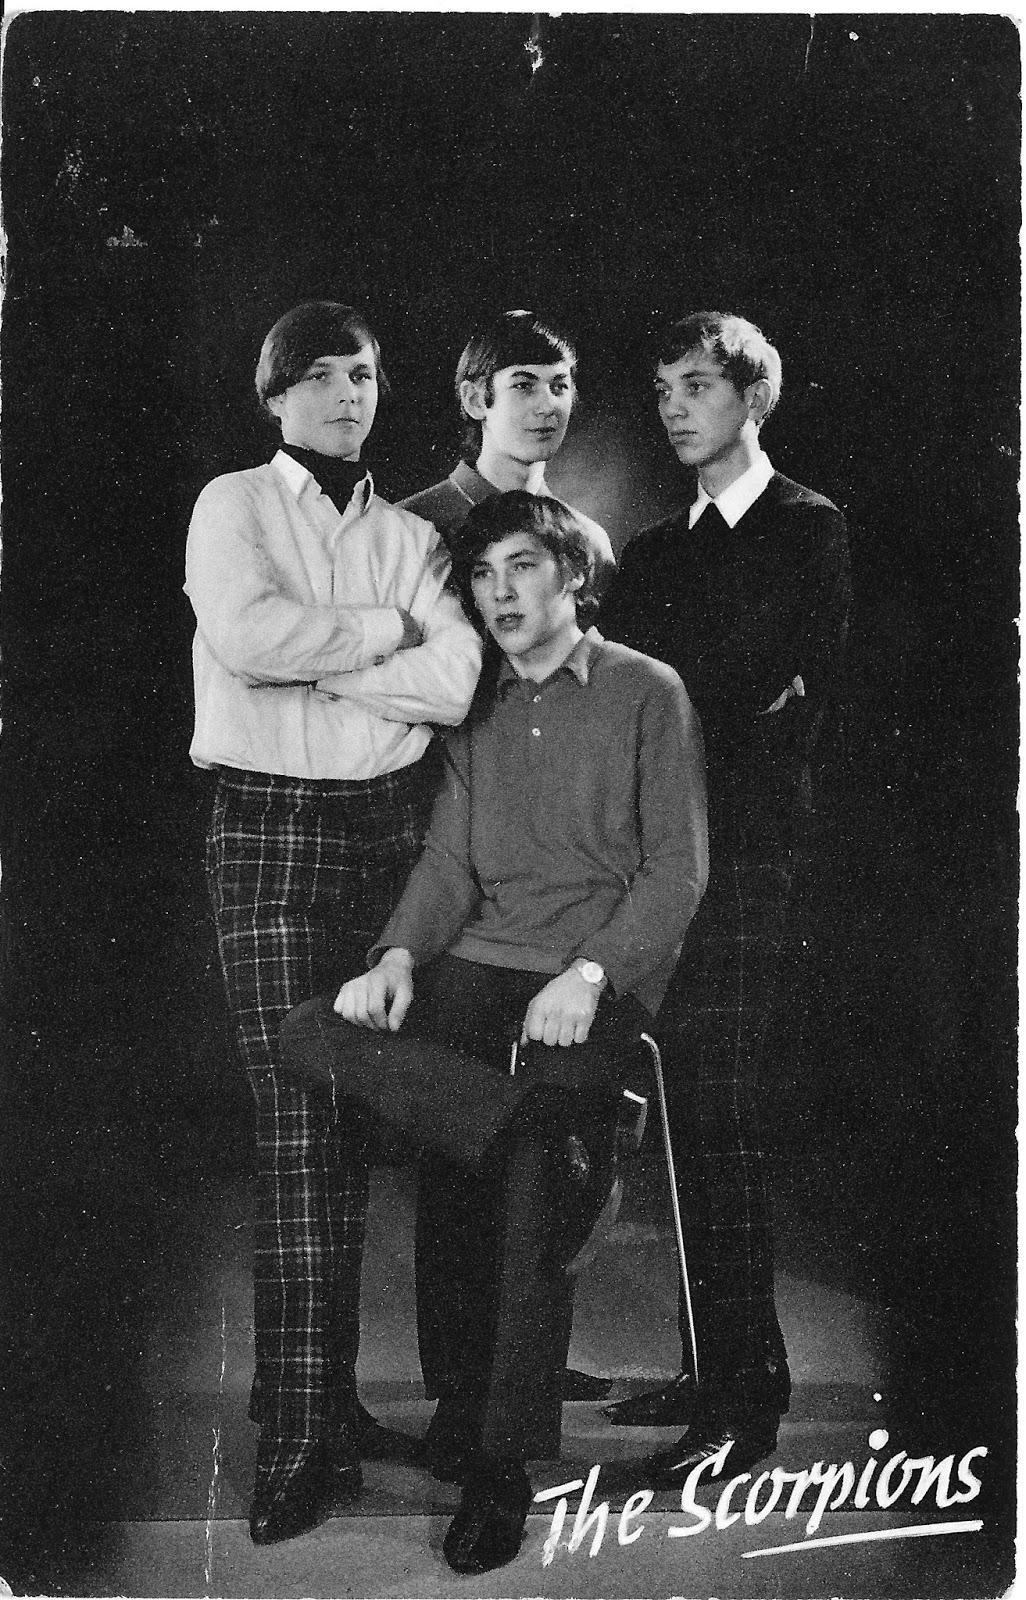 Rare Photos of The Scorpions in Their First Days in 1965 ... | 1026 x 1600 jpeg 518kB